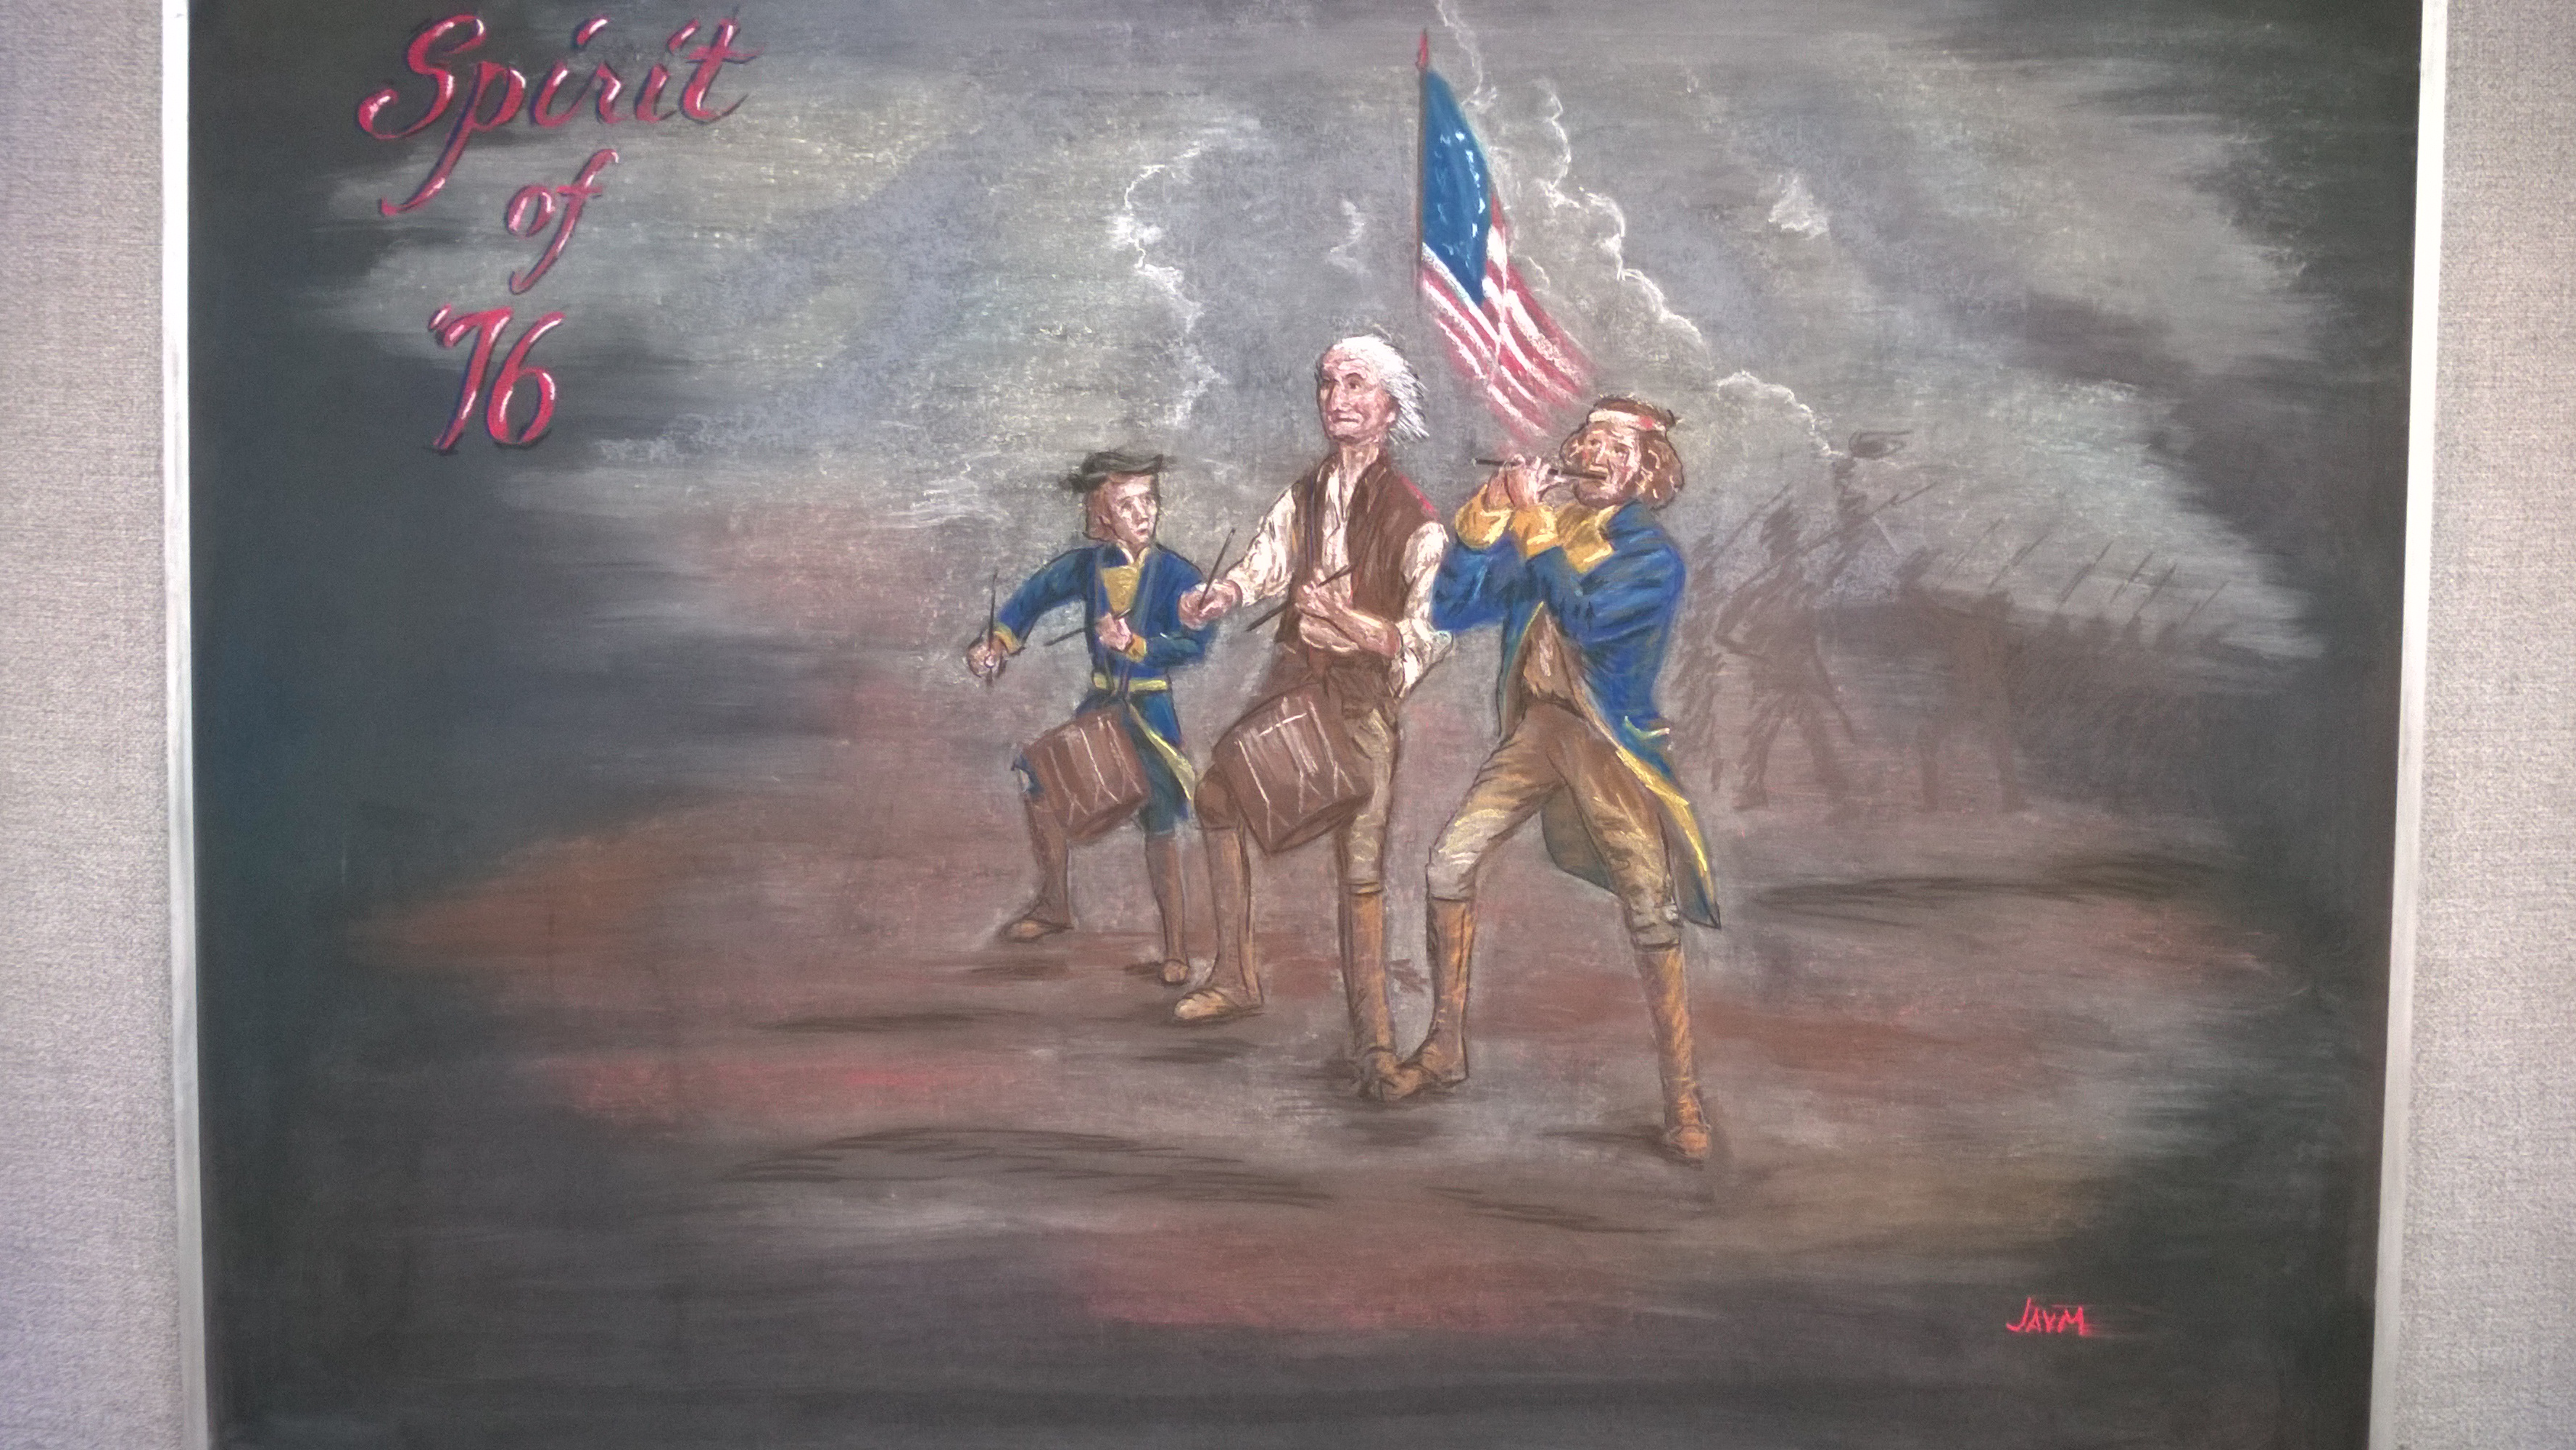 Julie Vander Meulen drew this chalk drawing for Independence Day 2016: The Spirit of '76. Photo: Julie Vander Meulen